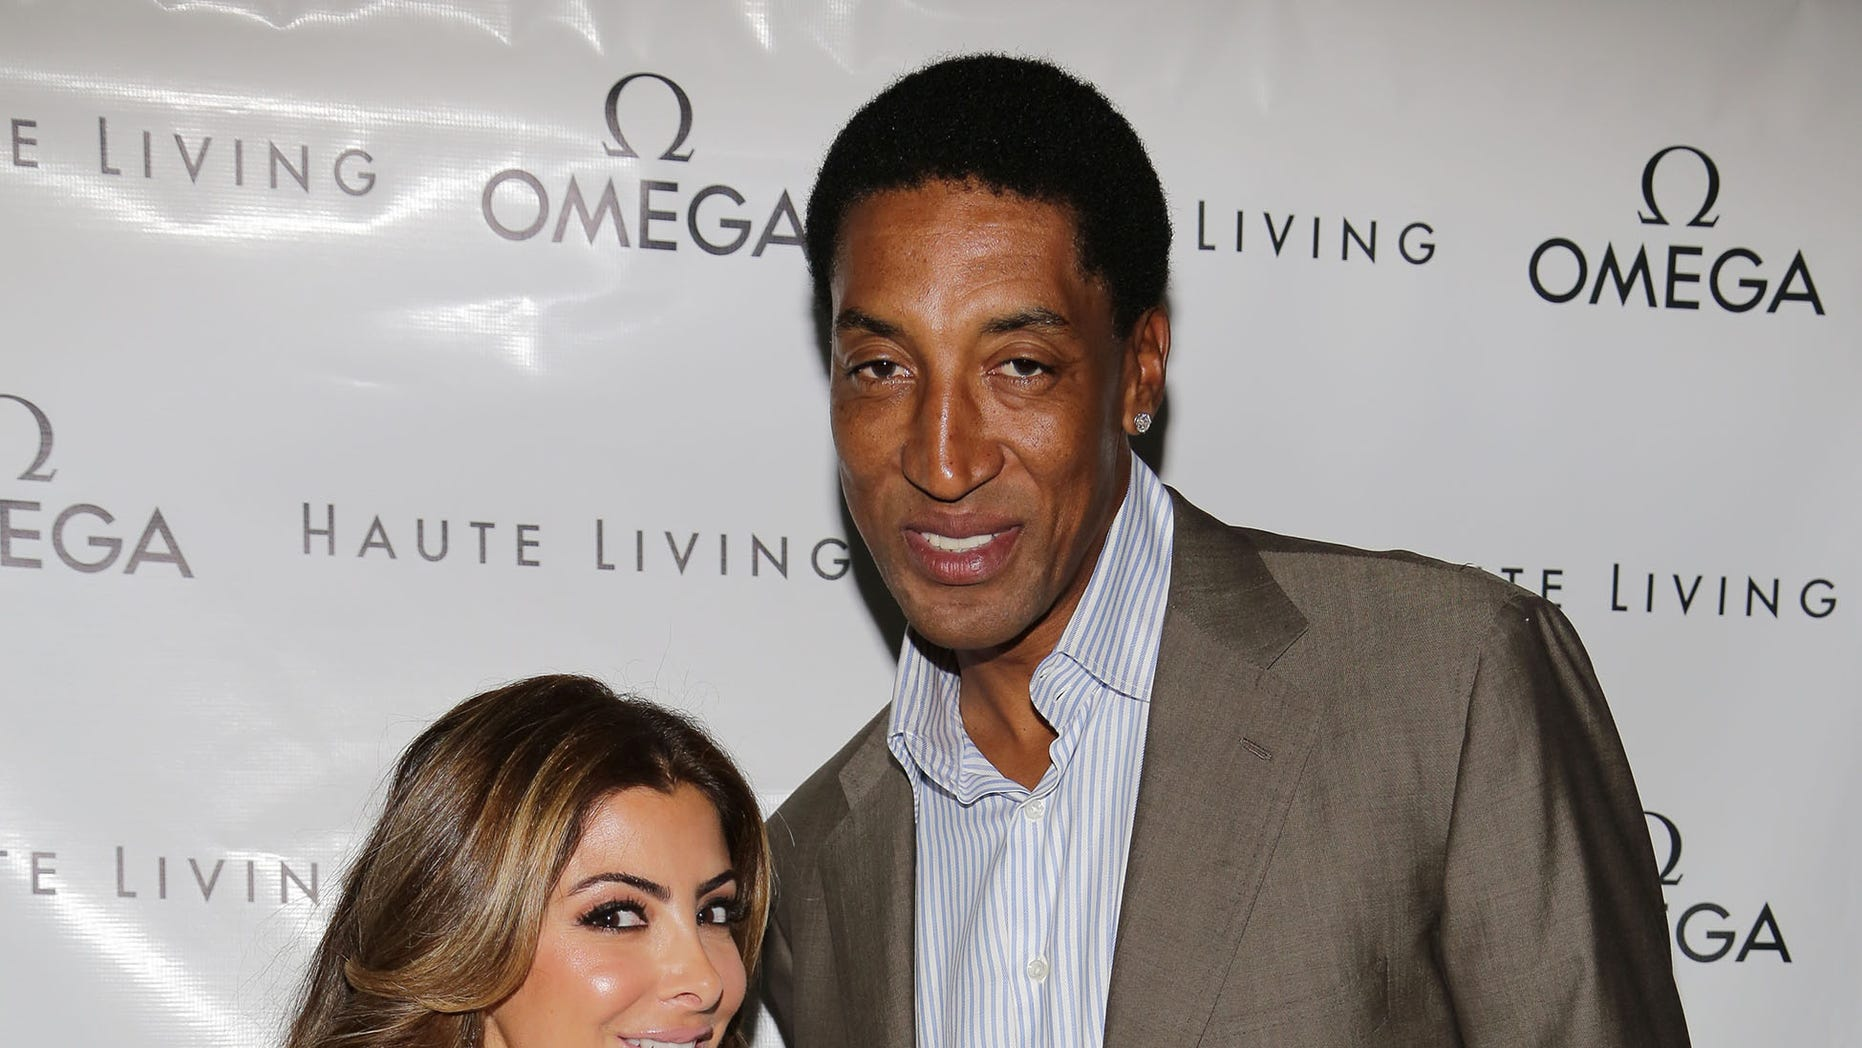 Larsa Pippen has filed for divorce from Scottie Pippen after 21 years of marriage, according to justice papers performed by The Blast.